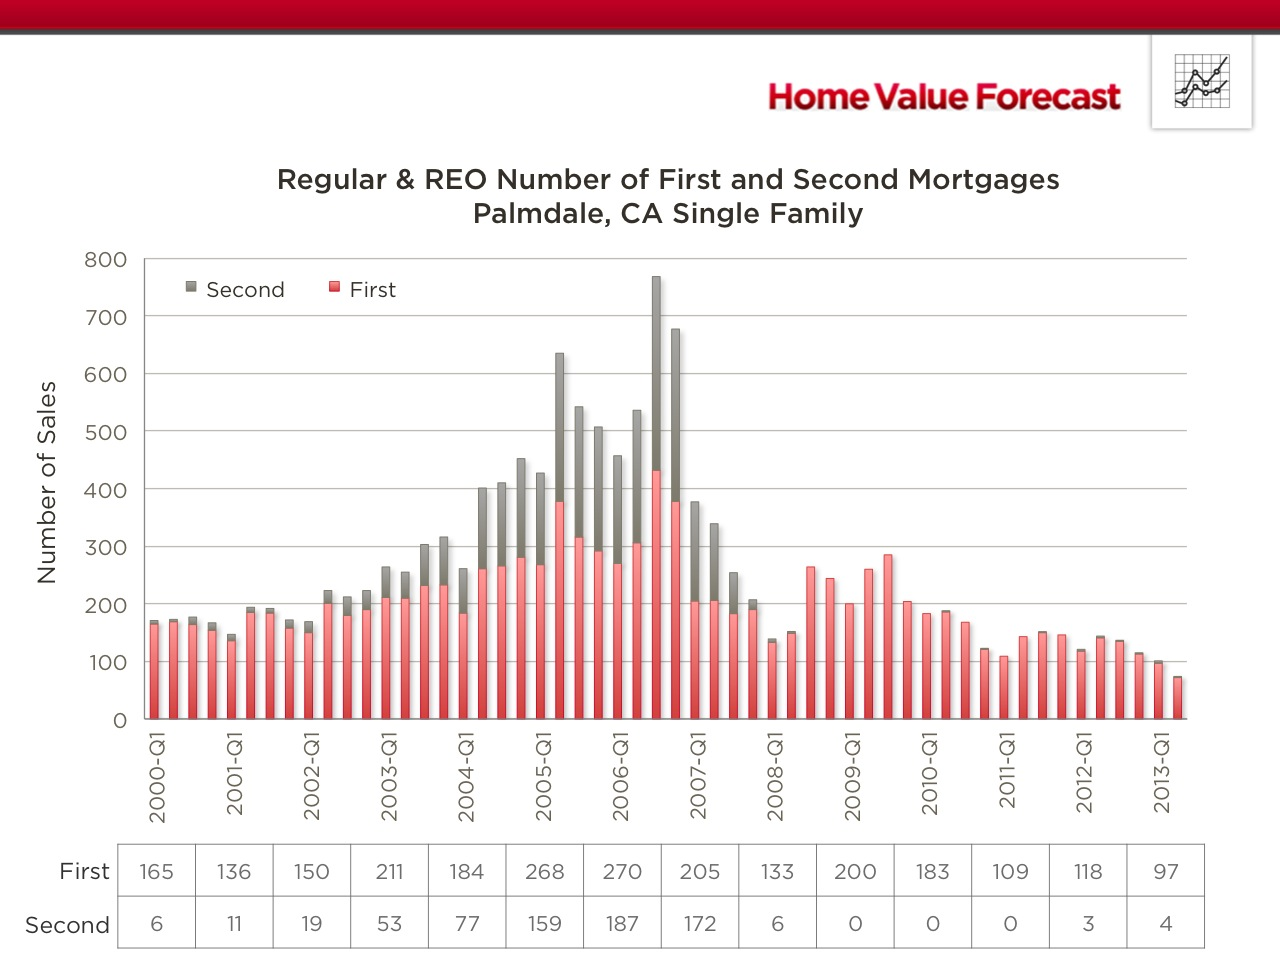 3-Palmdale-CA-Regular-REO-Mortgages[1]